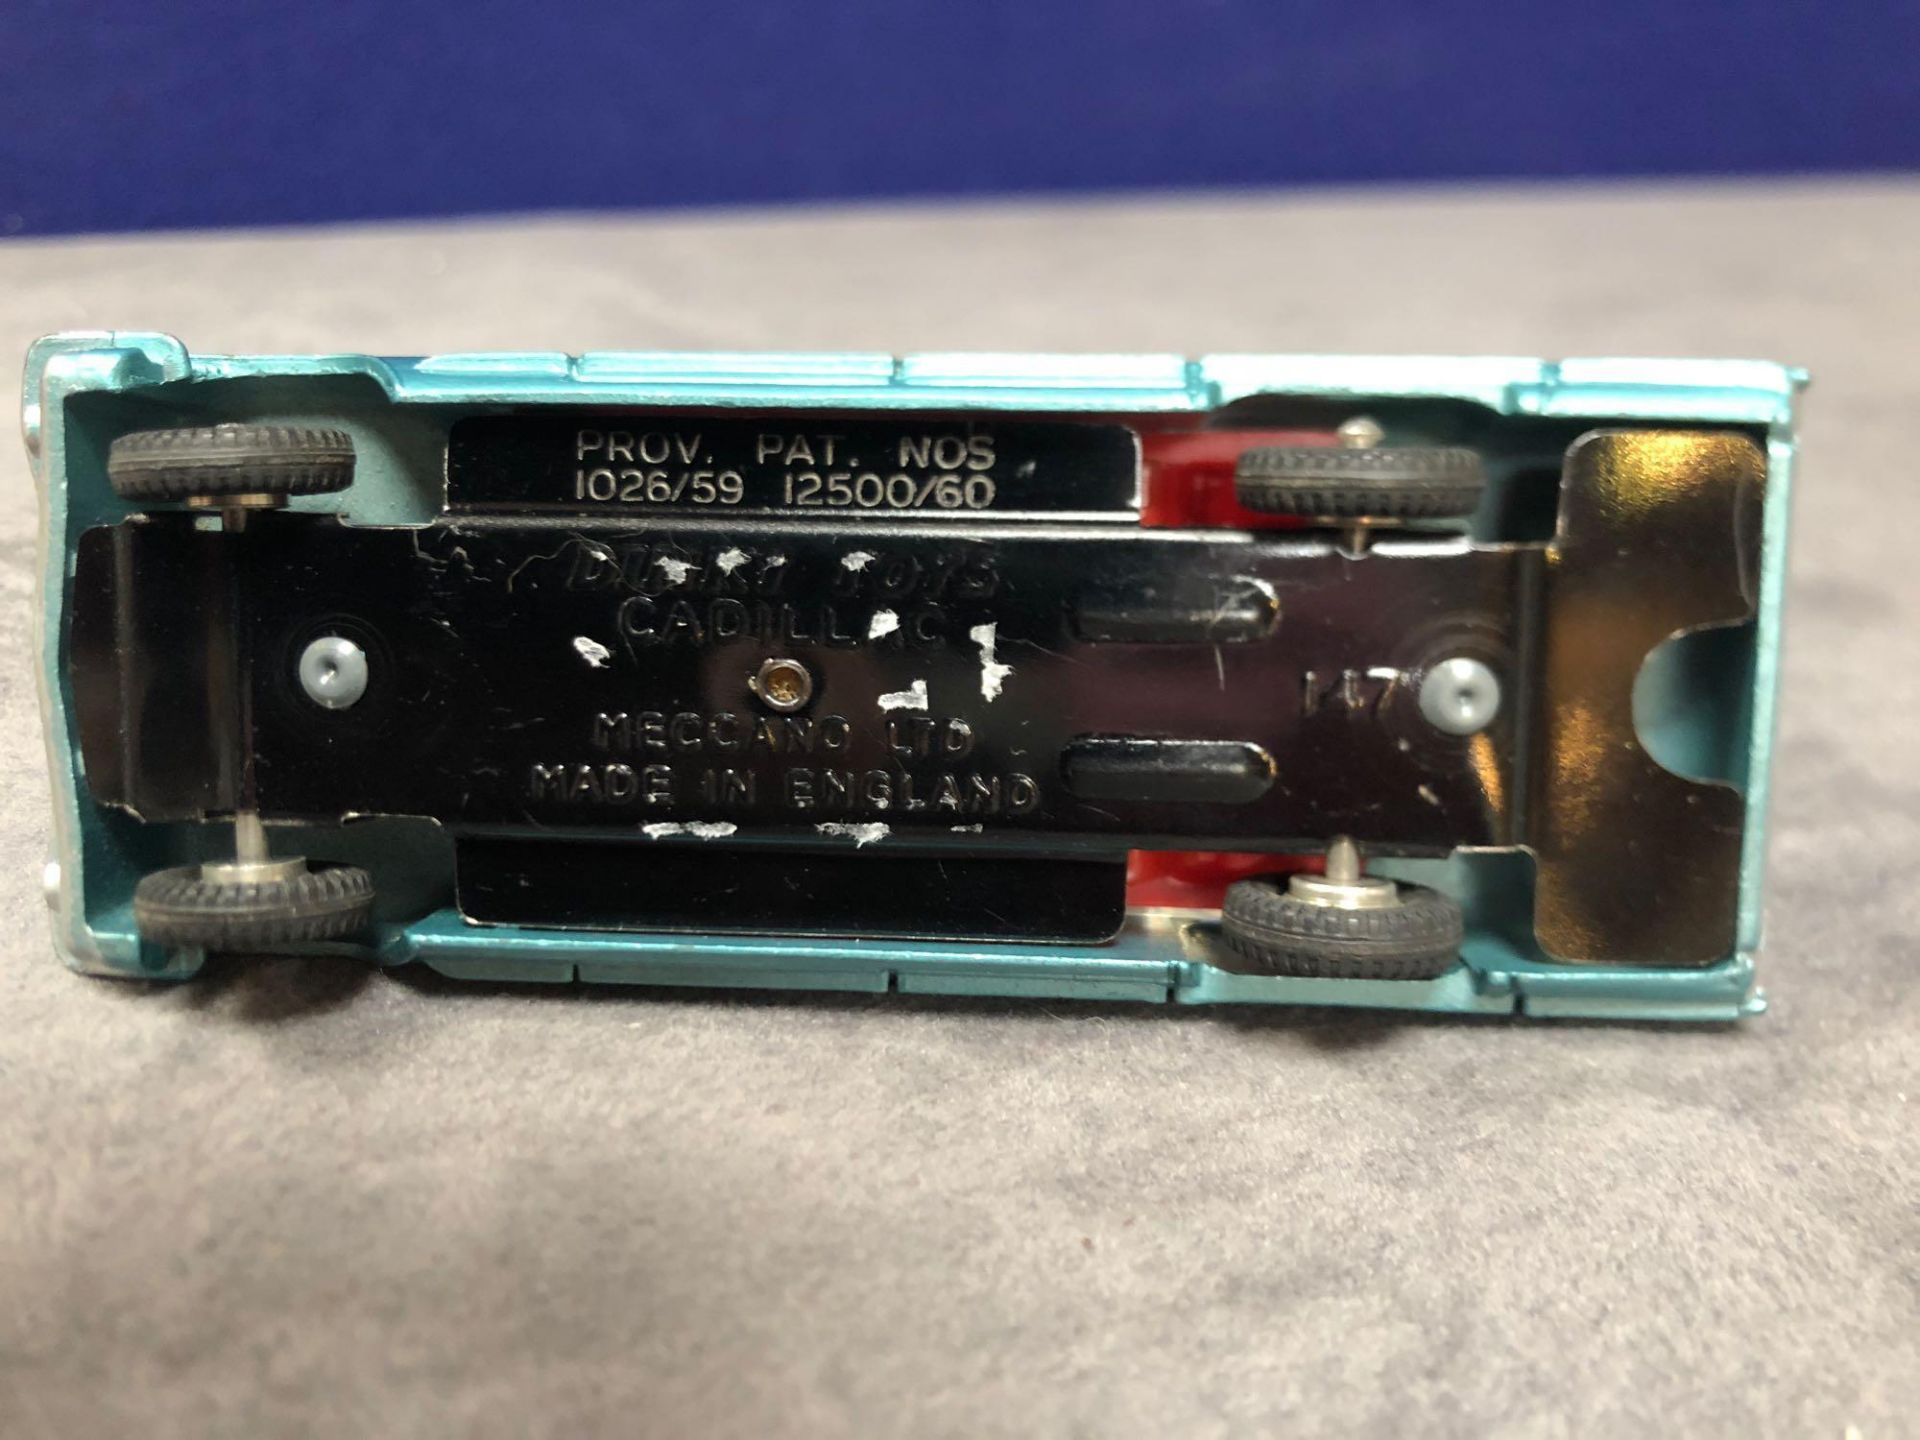 Dinky #147 Cadillac 62 Metallic Green - Red Interior And Spun Hubs 1962-1969. Unboxed Mint Lovely - Image 3 of 4